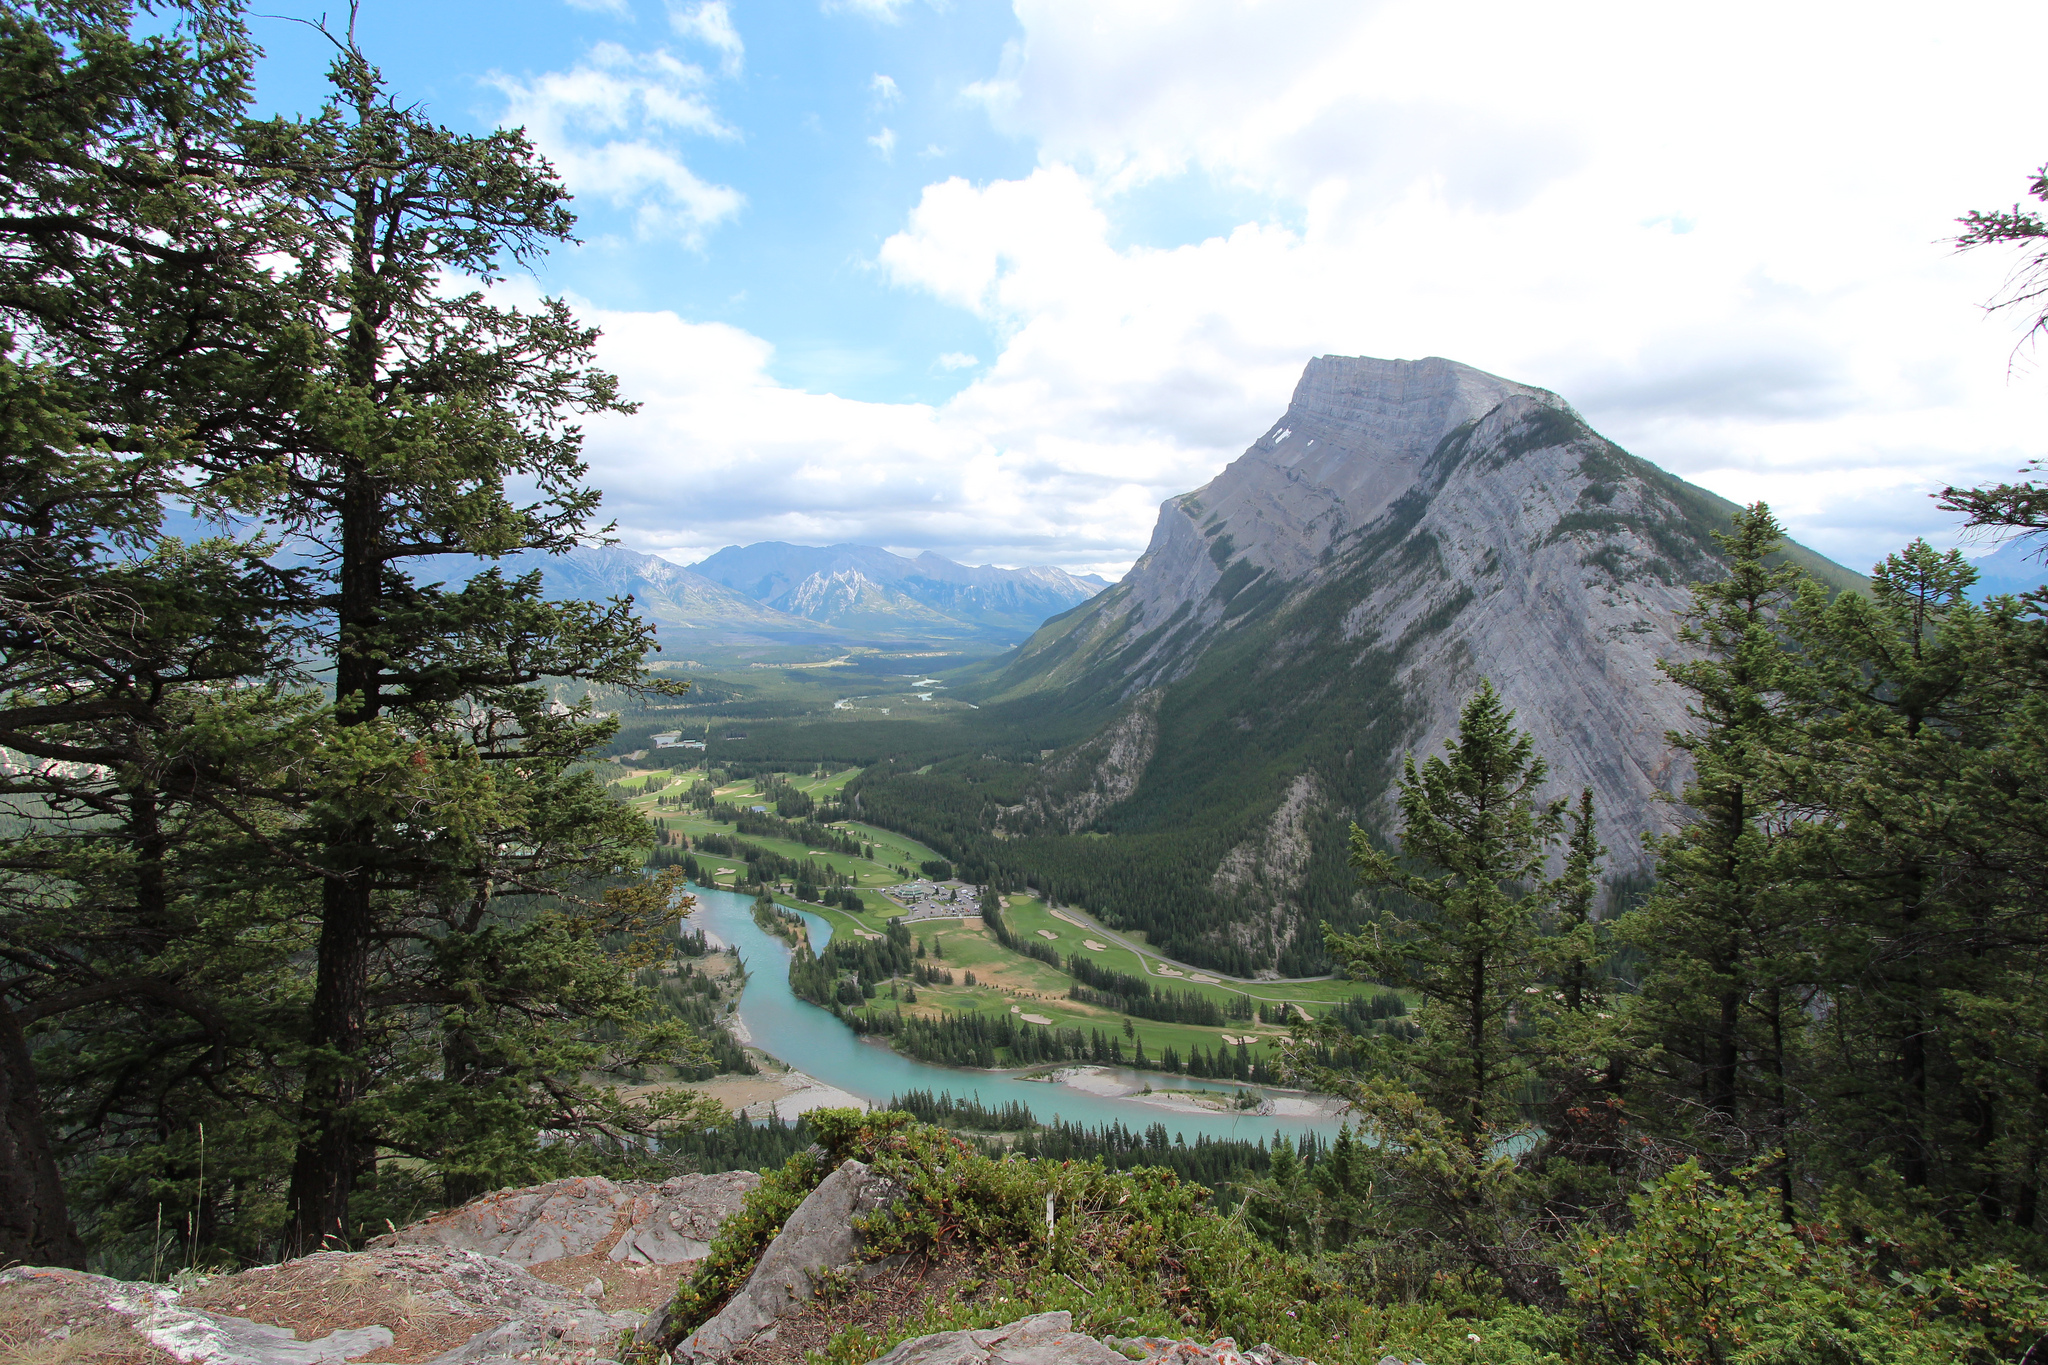 """""""My Visit to Tunnel Mountain Banff Alberta Canada"""" by Davebloggs via Flickr Creative Commons"""